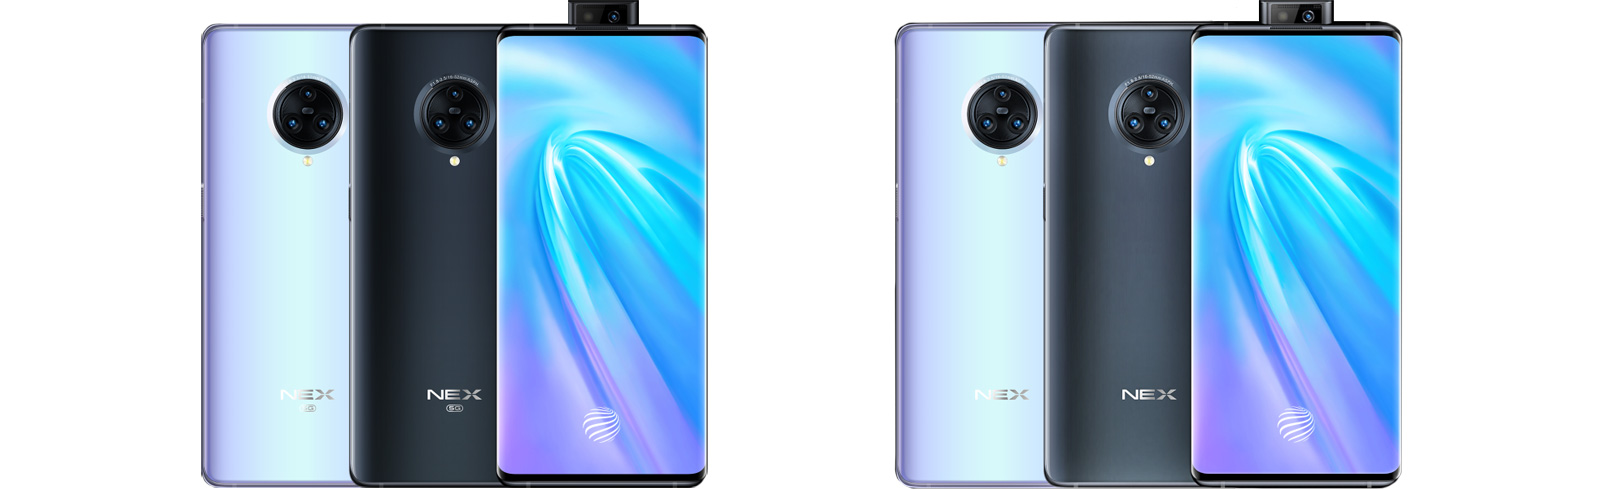 Vivo NEX 3 4G and Vivo NEX 3 5G are unveiled featuring a Waterfall Display